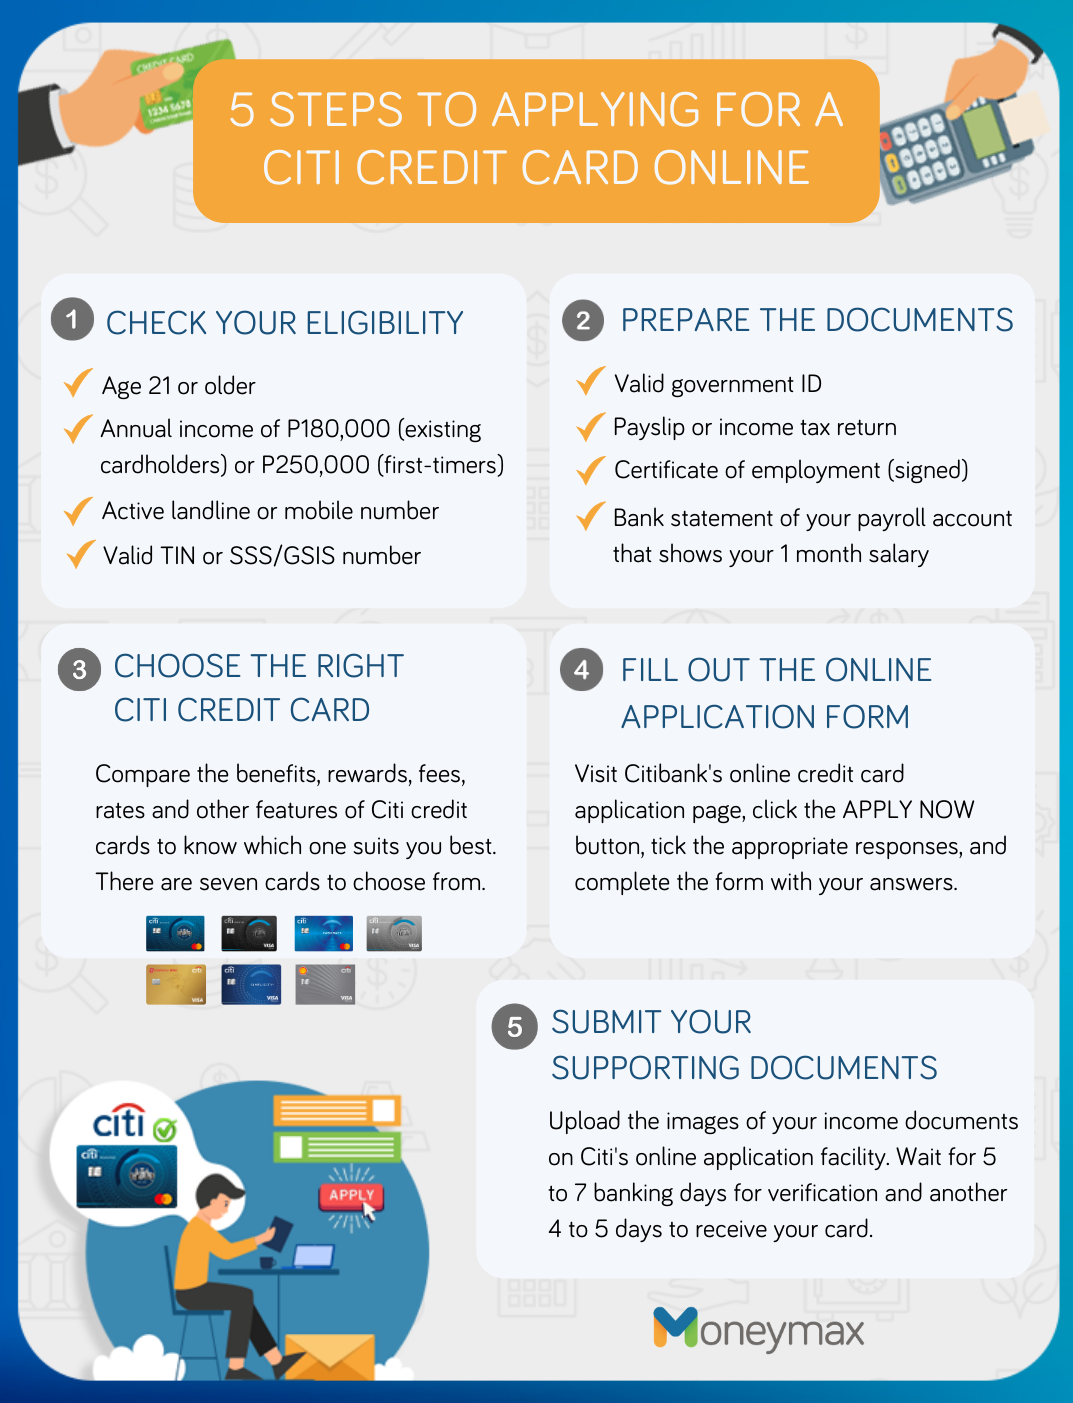 Citi Credit Card Application Guide - How to Apply for a Citi Credit Card Online